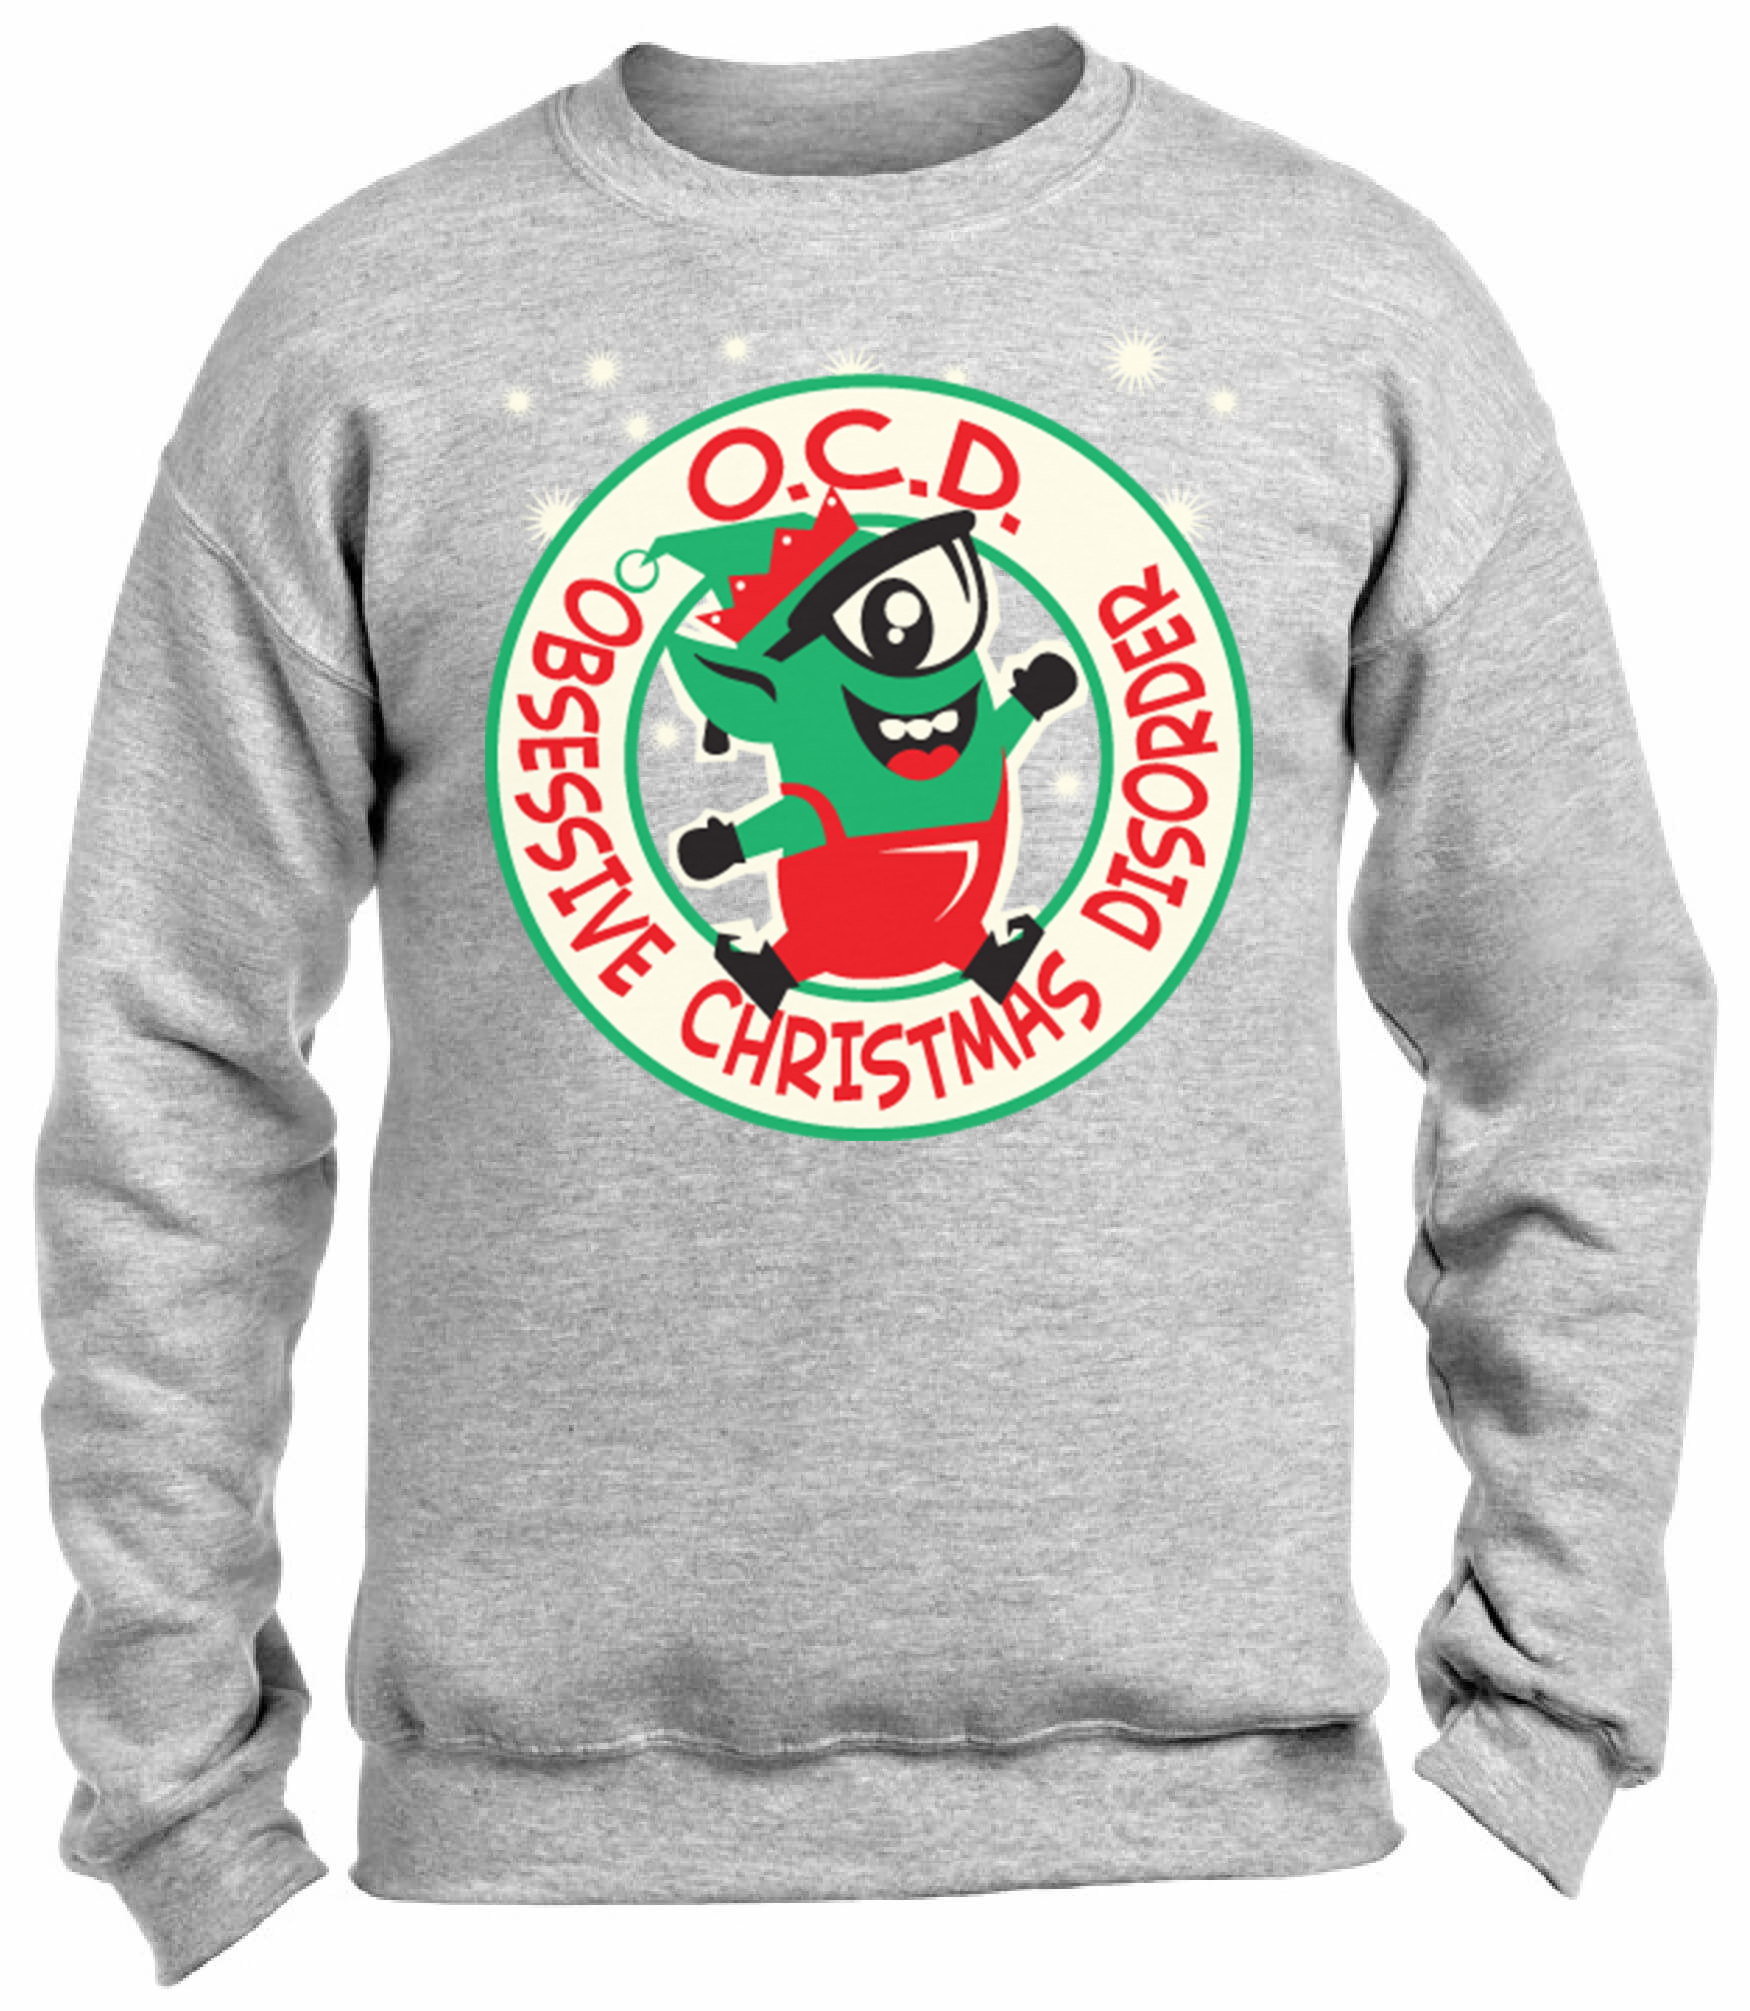 OCD Obsessive Christmas Disorder Christmas Sweatshirt Ugly Christmas ...